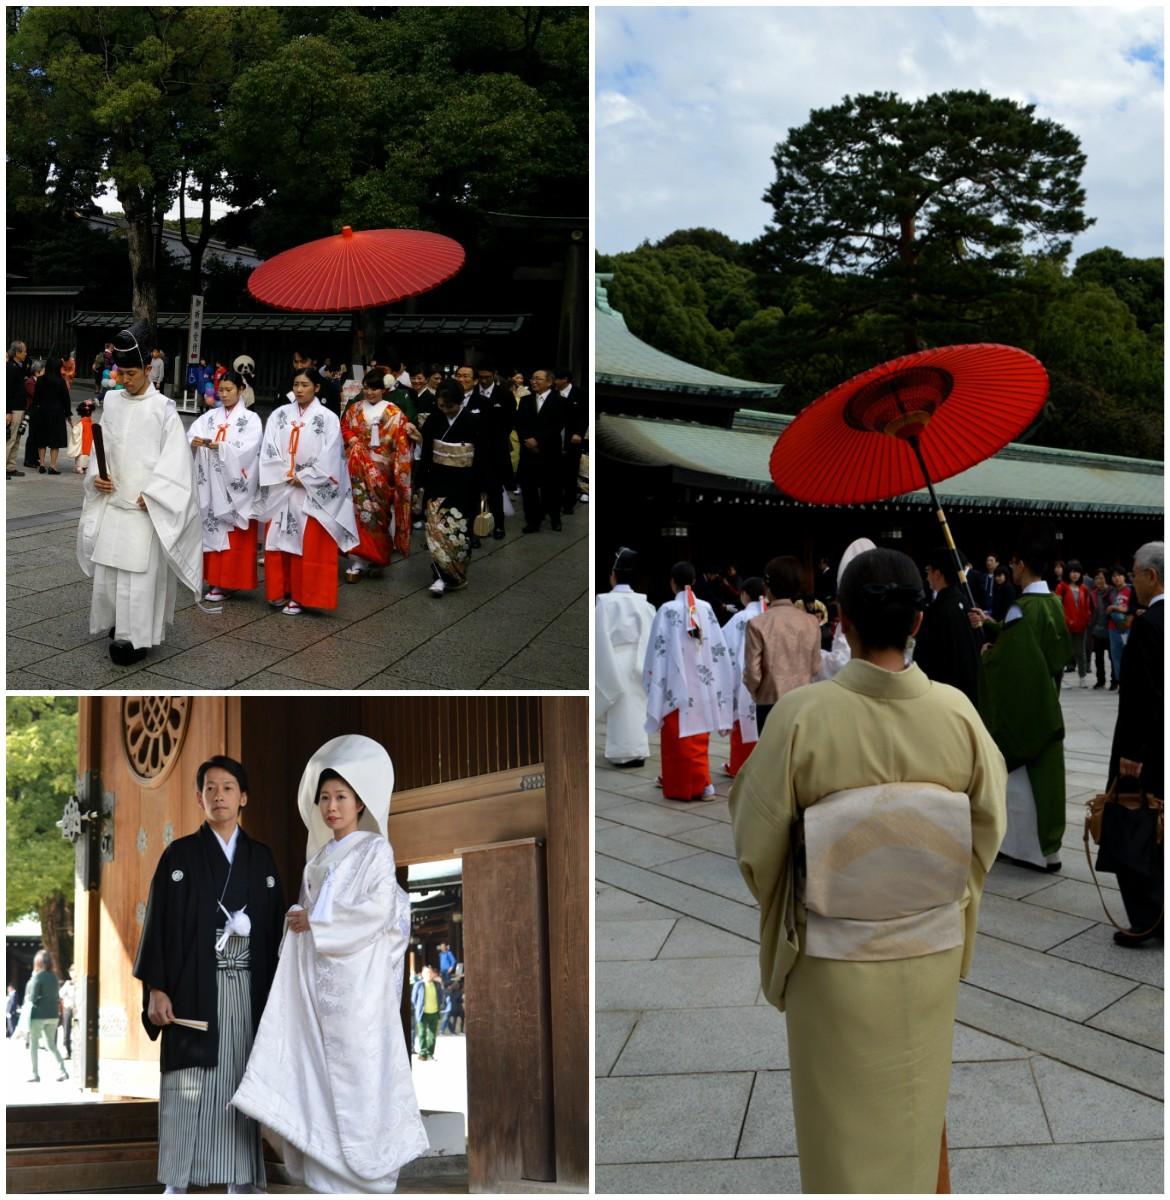 Japanese wedding - the bride and groom